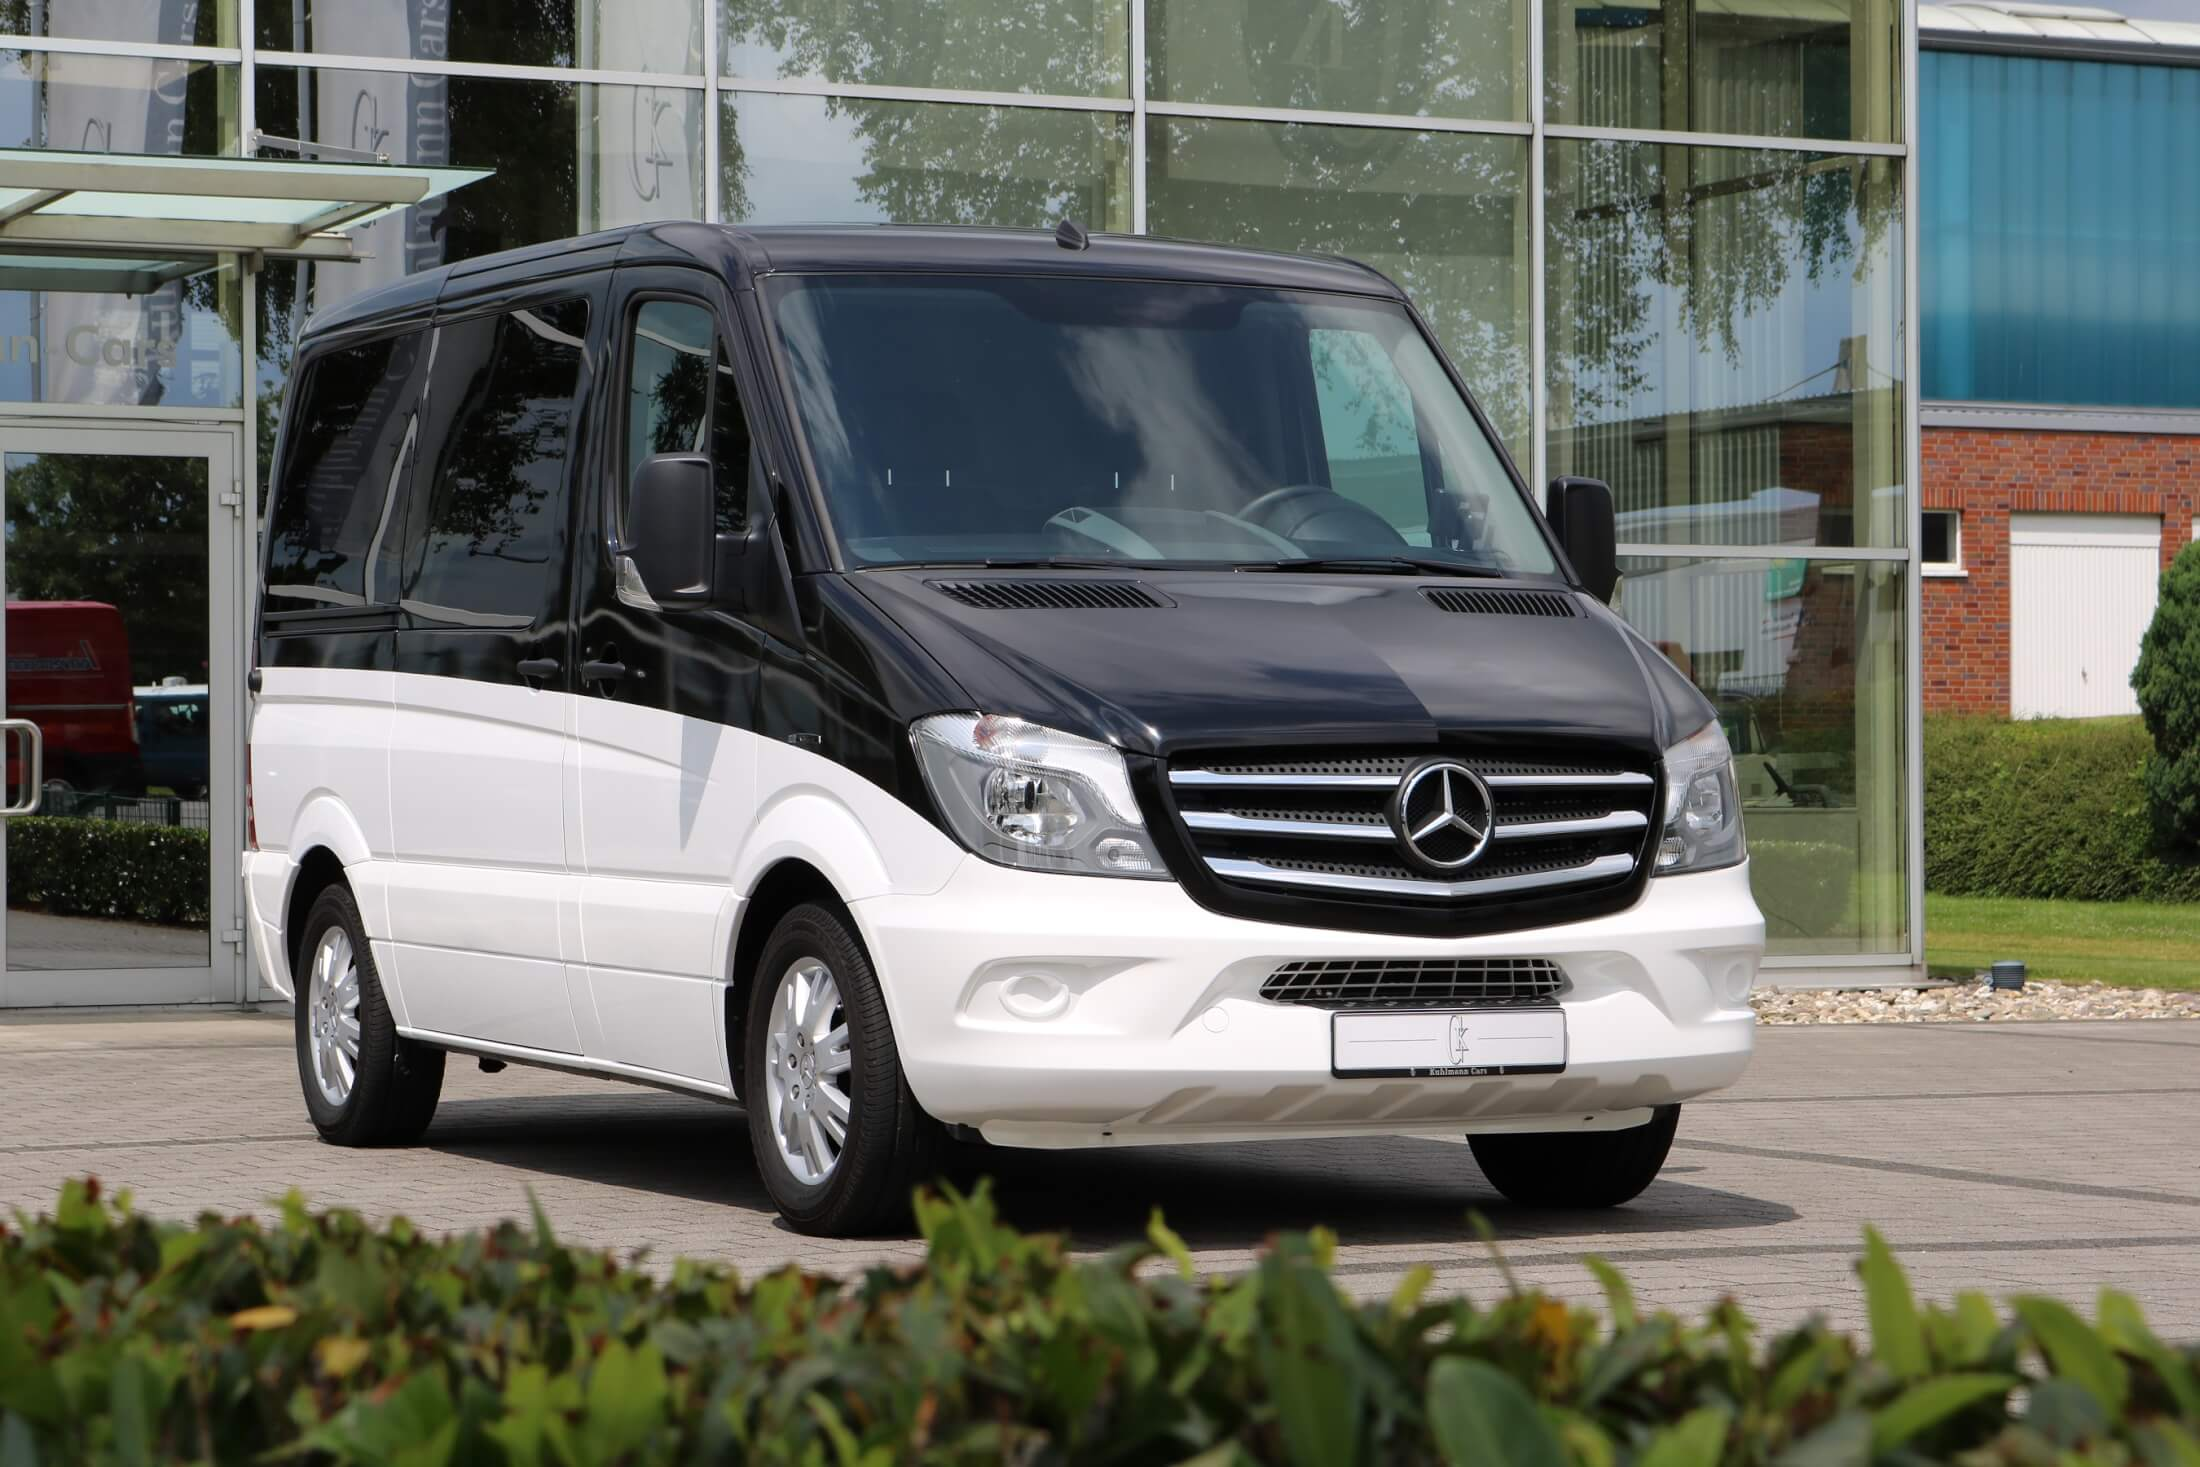 img pass mercades black limo limousines mercedes inc benz minibus passenger sprinter bus legend